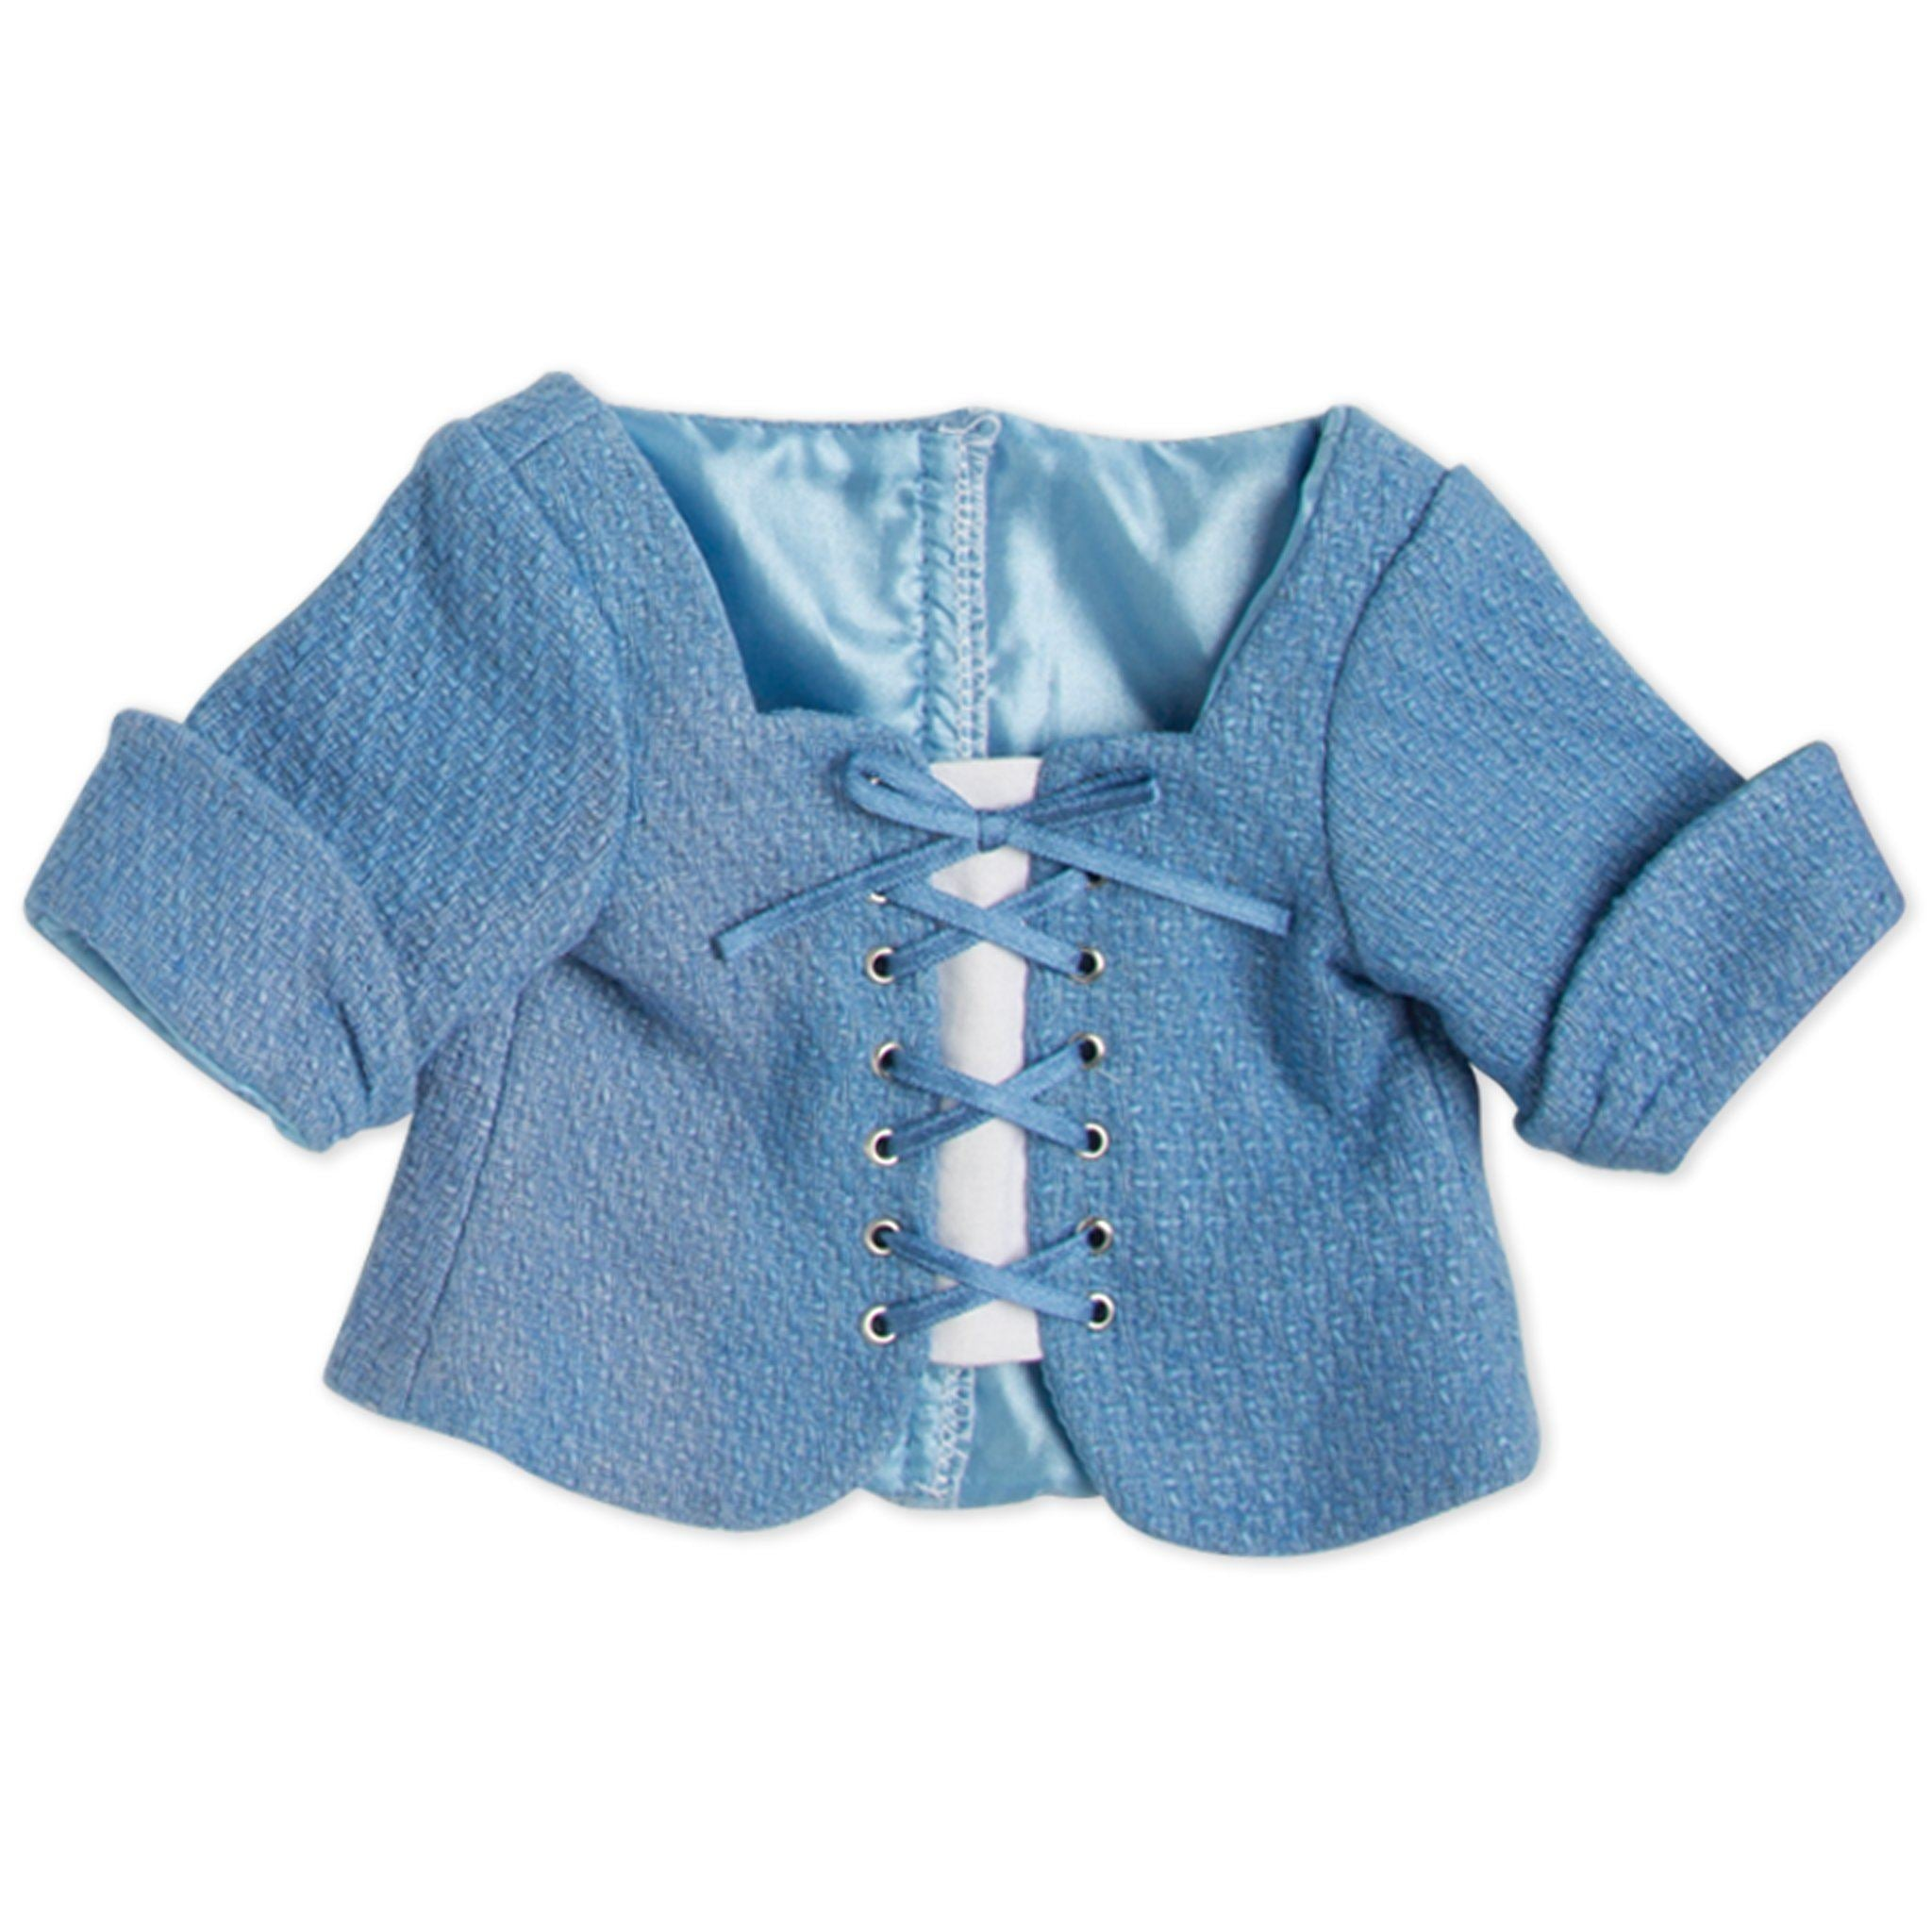 Pioneer Quebecoise 8-piece heritage outfit blue lace-up chemise fits all 18 inch dolls.